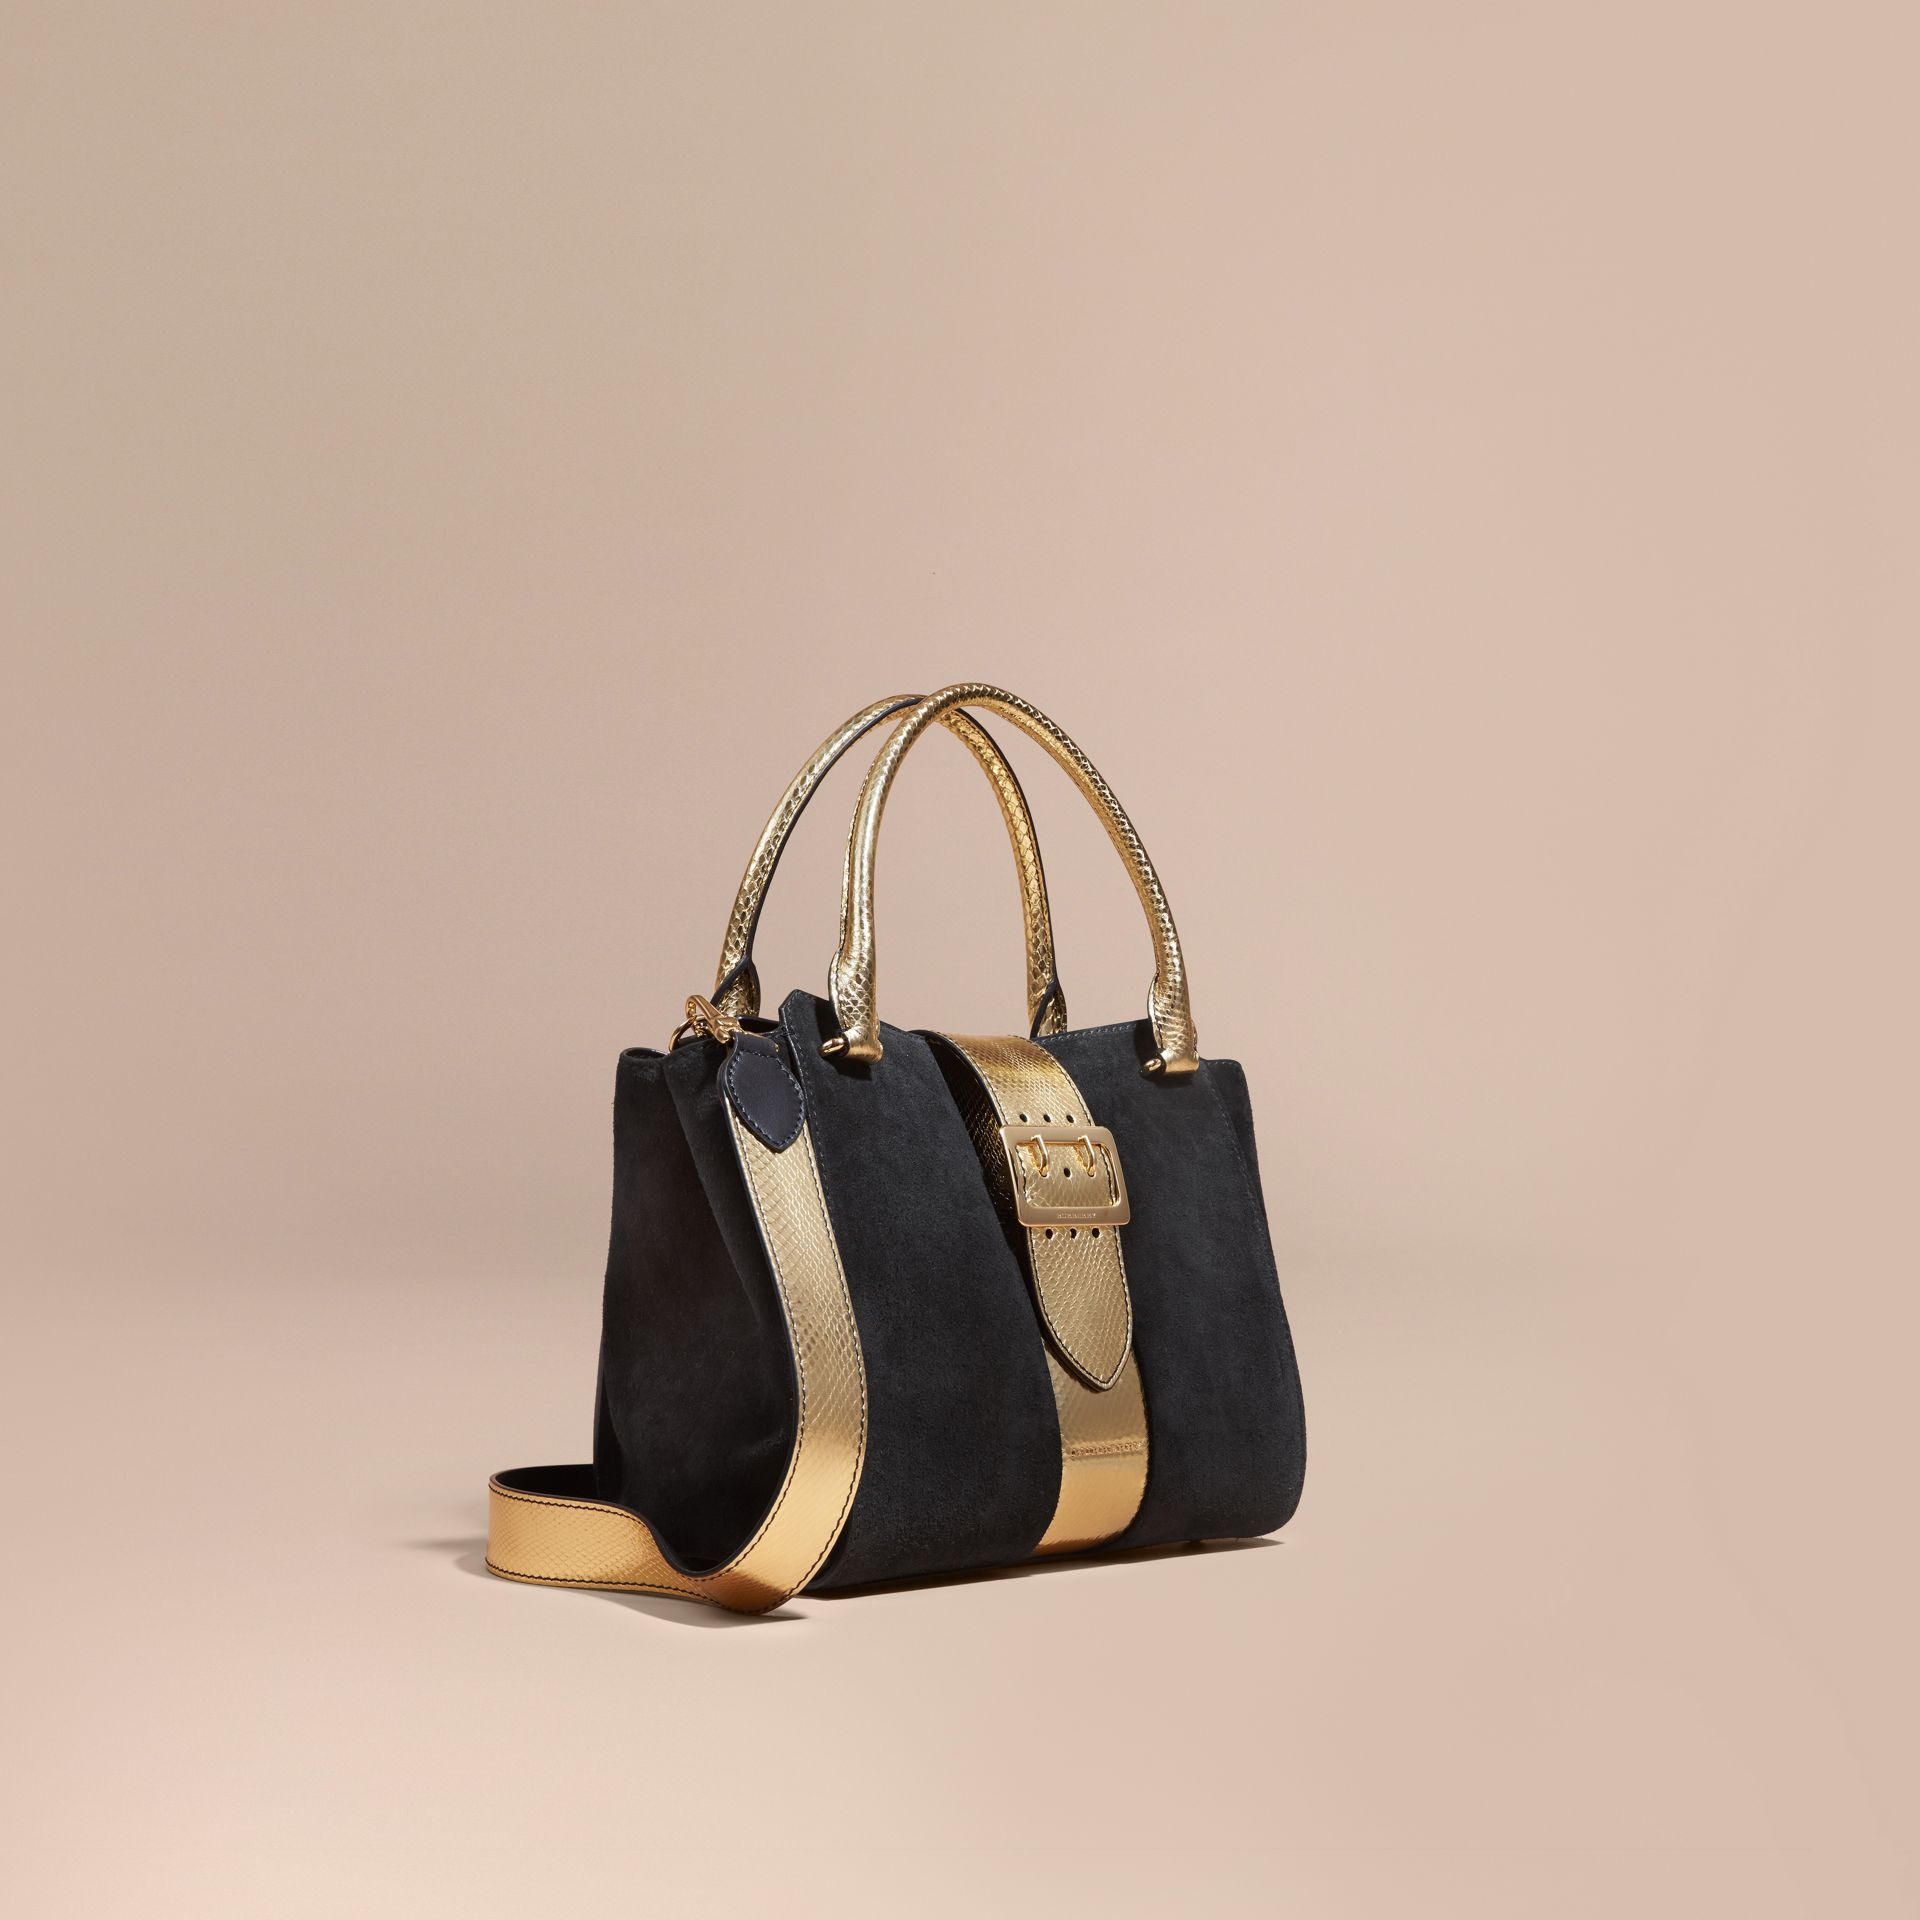 Black/gold The Medium Buckle Tote in Suede and Snakeskin - gallery image 1